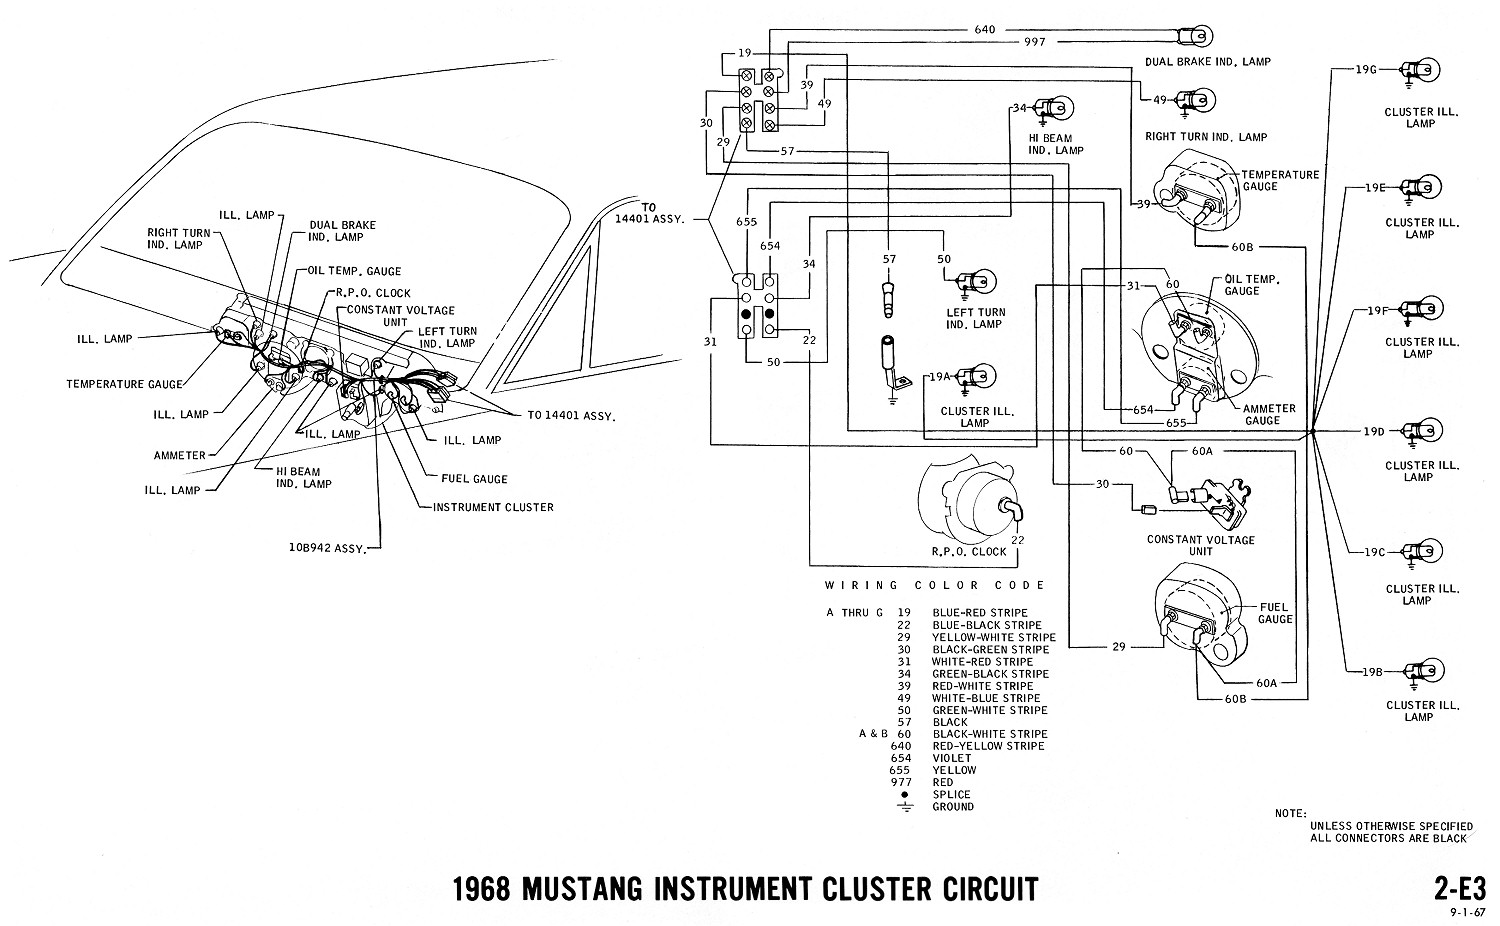 hight resolution of 1972 vw wire harness schematic auto electrical wiring diagram rh harvard edu co uk sistemagroup me 1979 mustang